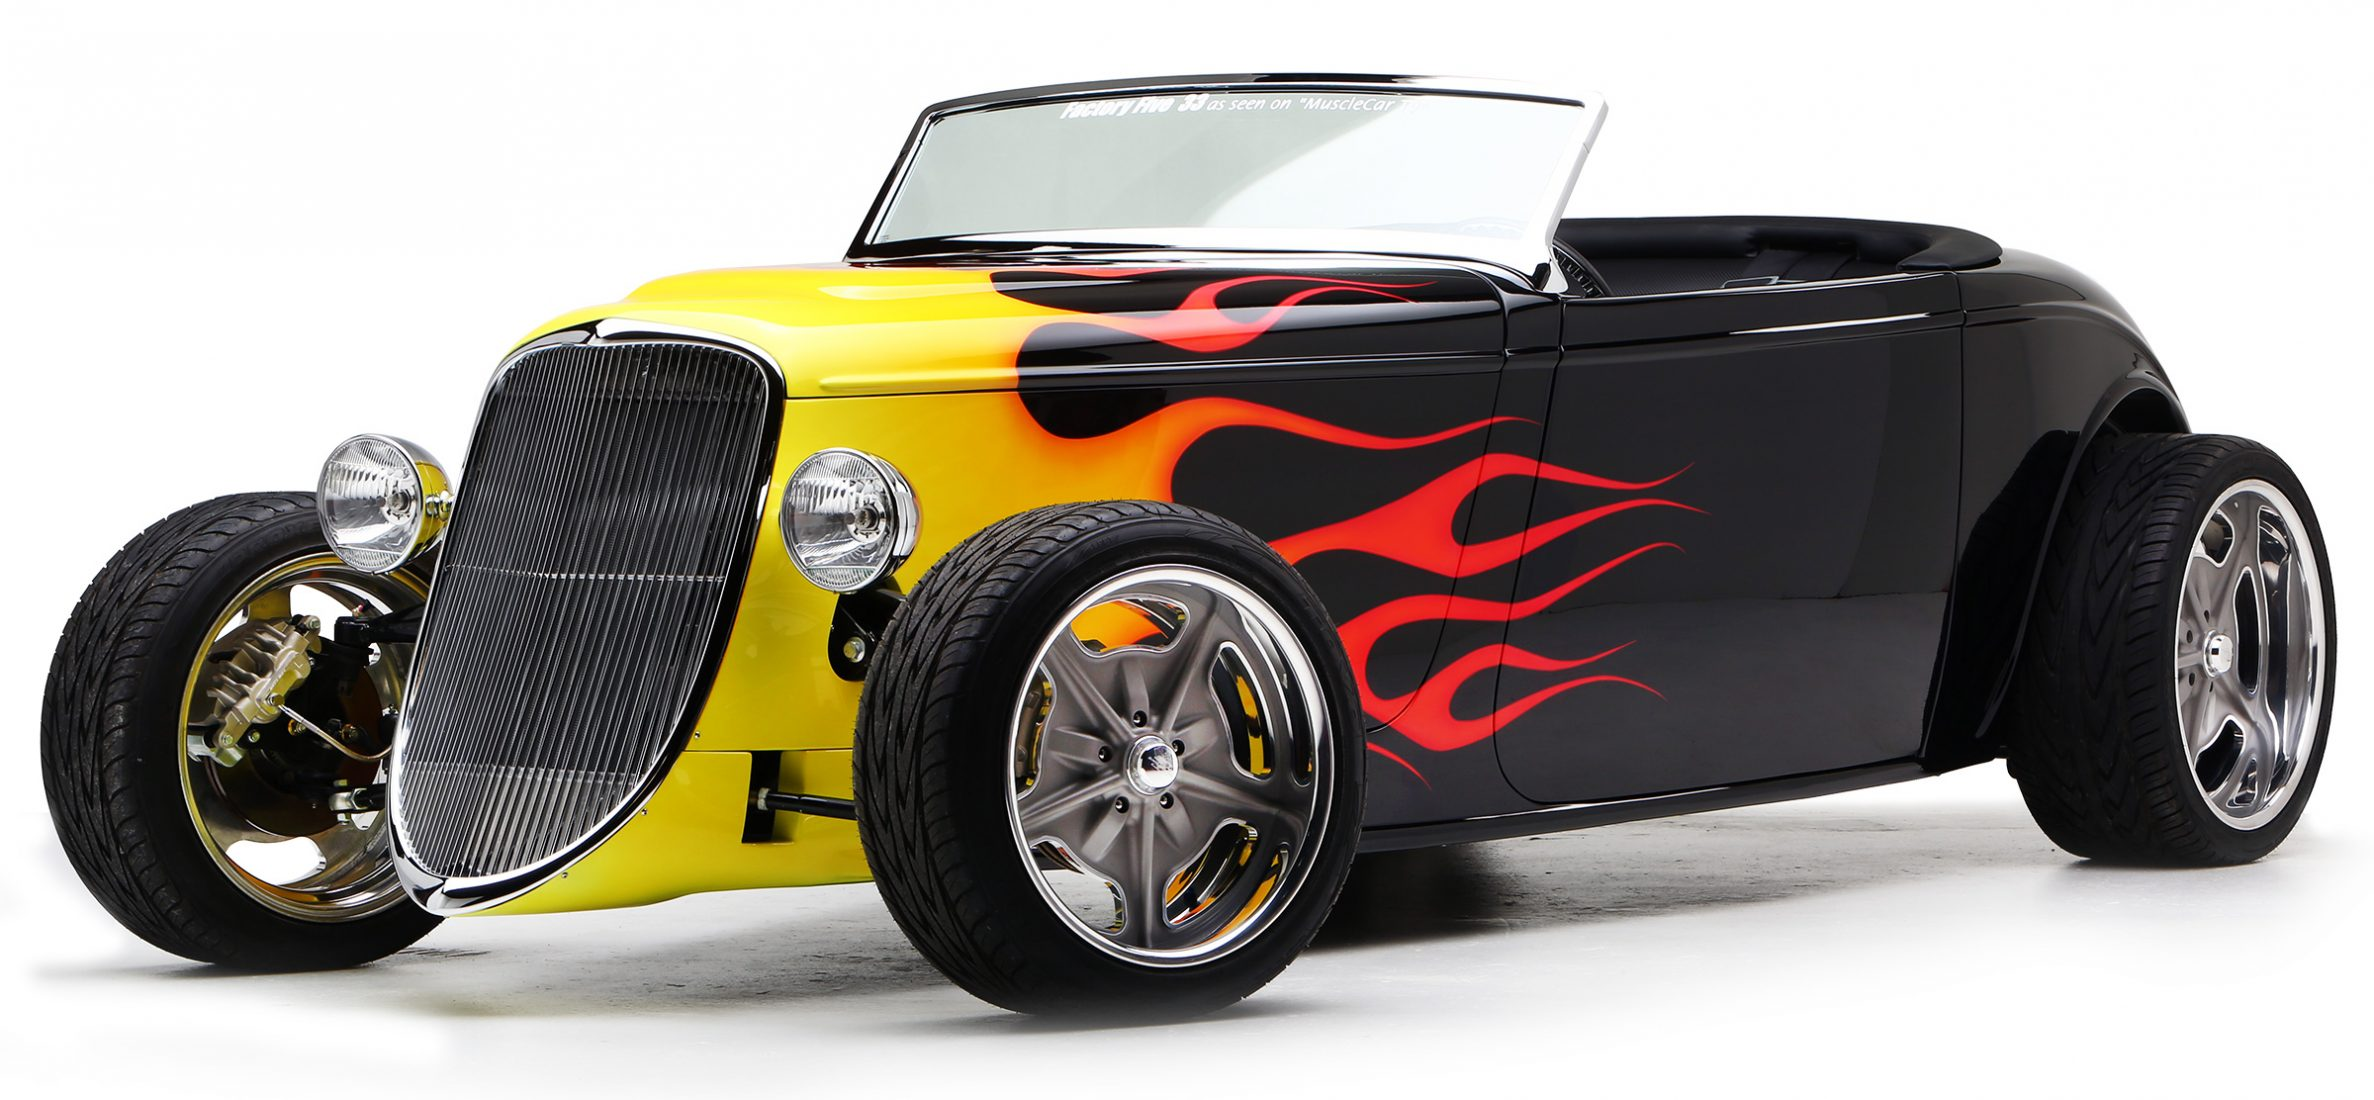 hot-rod-overview-2374x1100.jpg